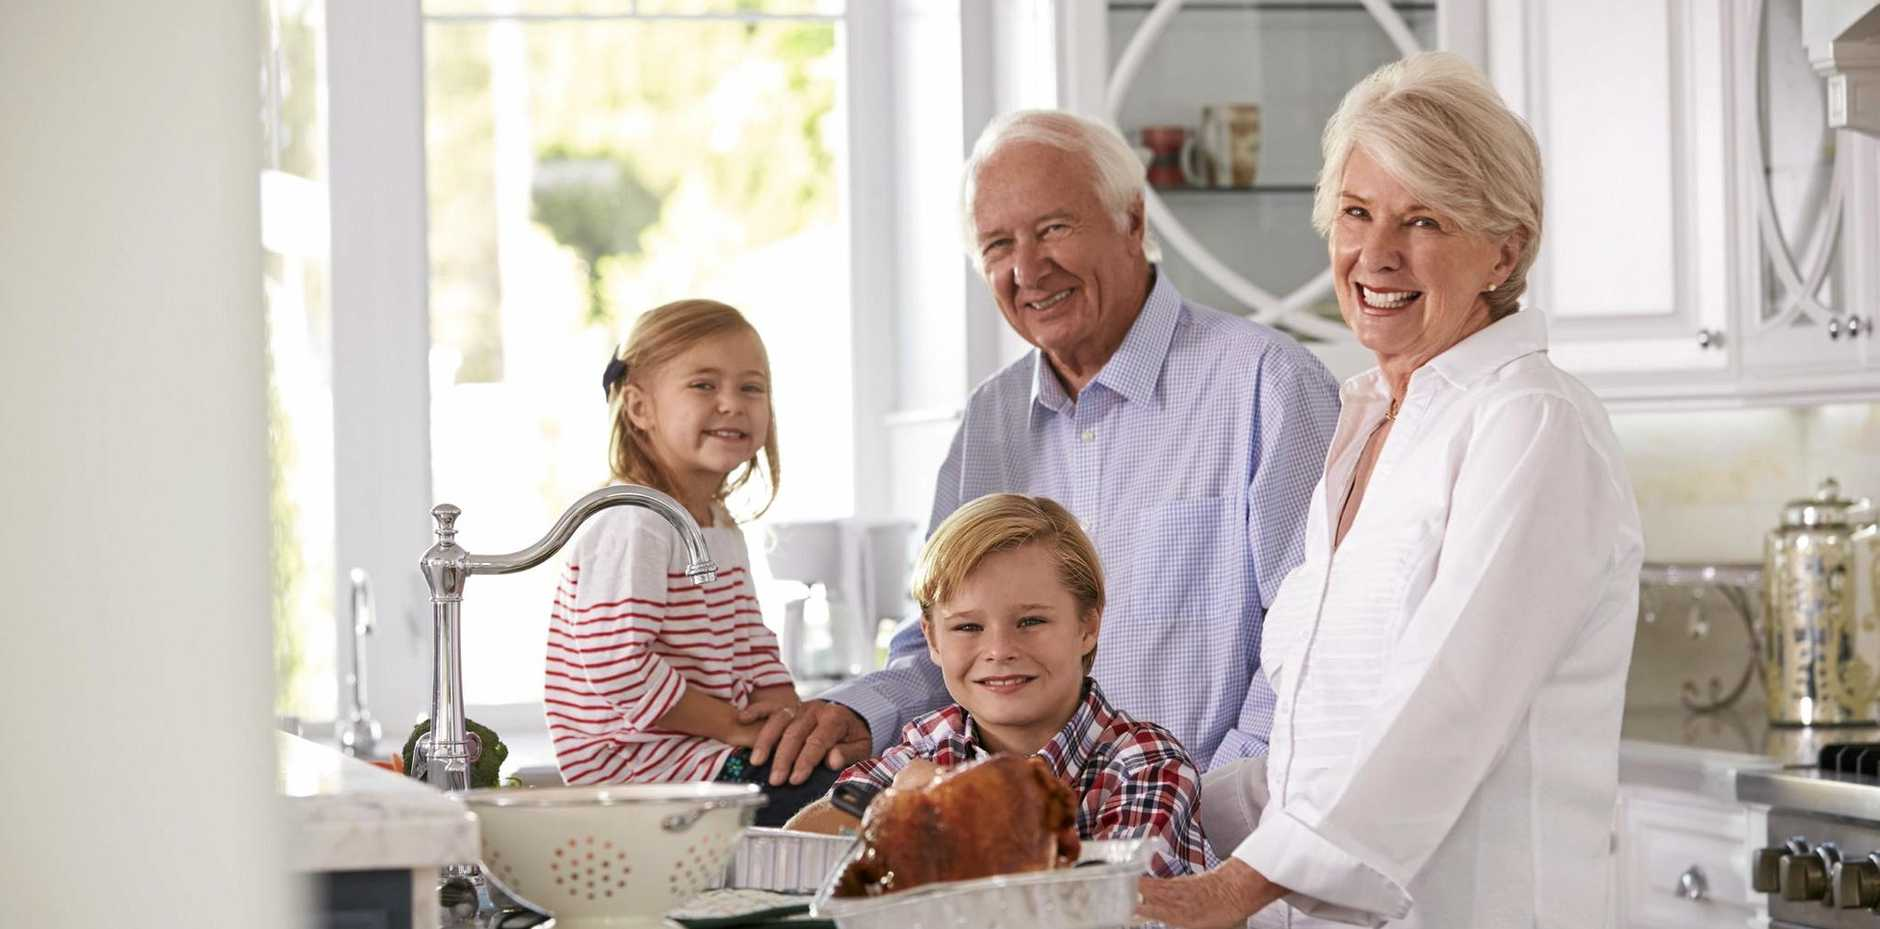 This year, Grandparents Day will be celebrated on Sunday, October 30, and schools and community groups across the state will be holding events to celebrate.